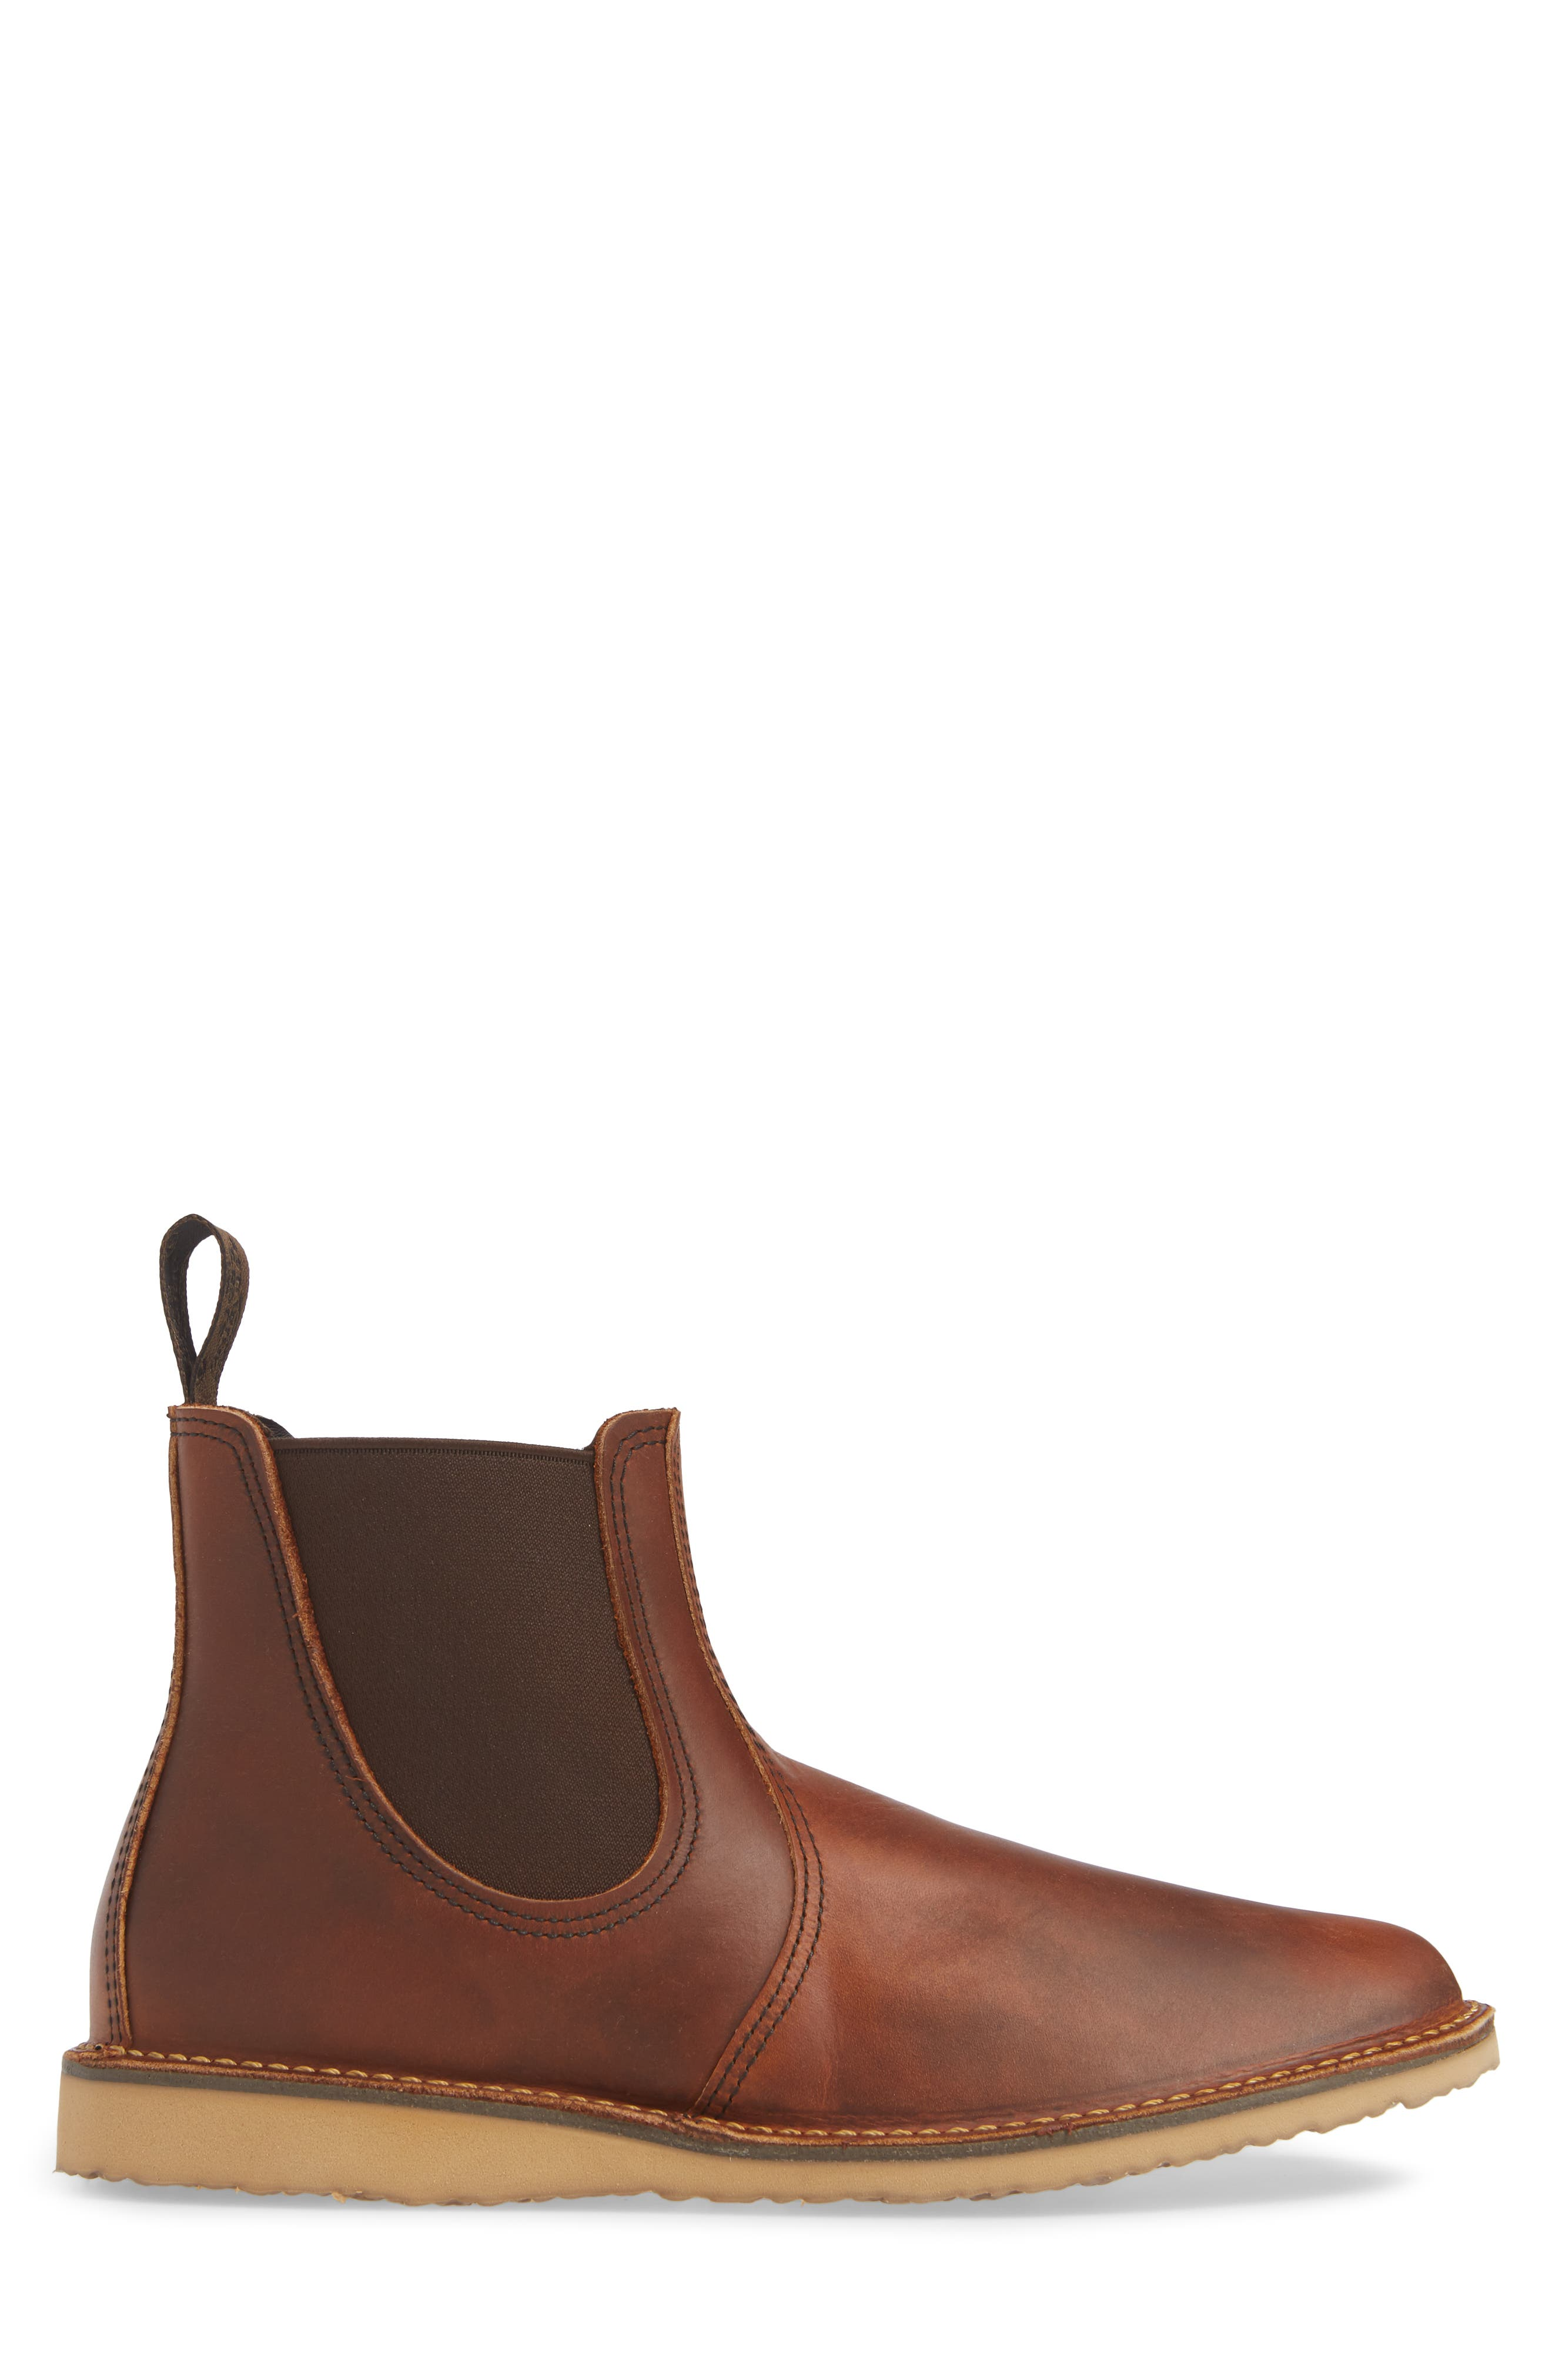 Chelsea Boot,                             Alternate thumbnail 3, color,                             COPPER LEATHER